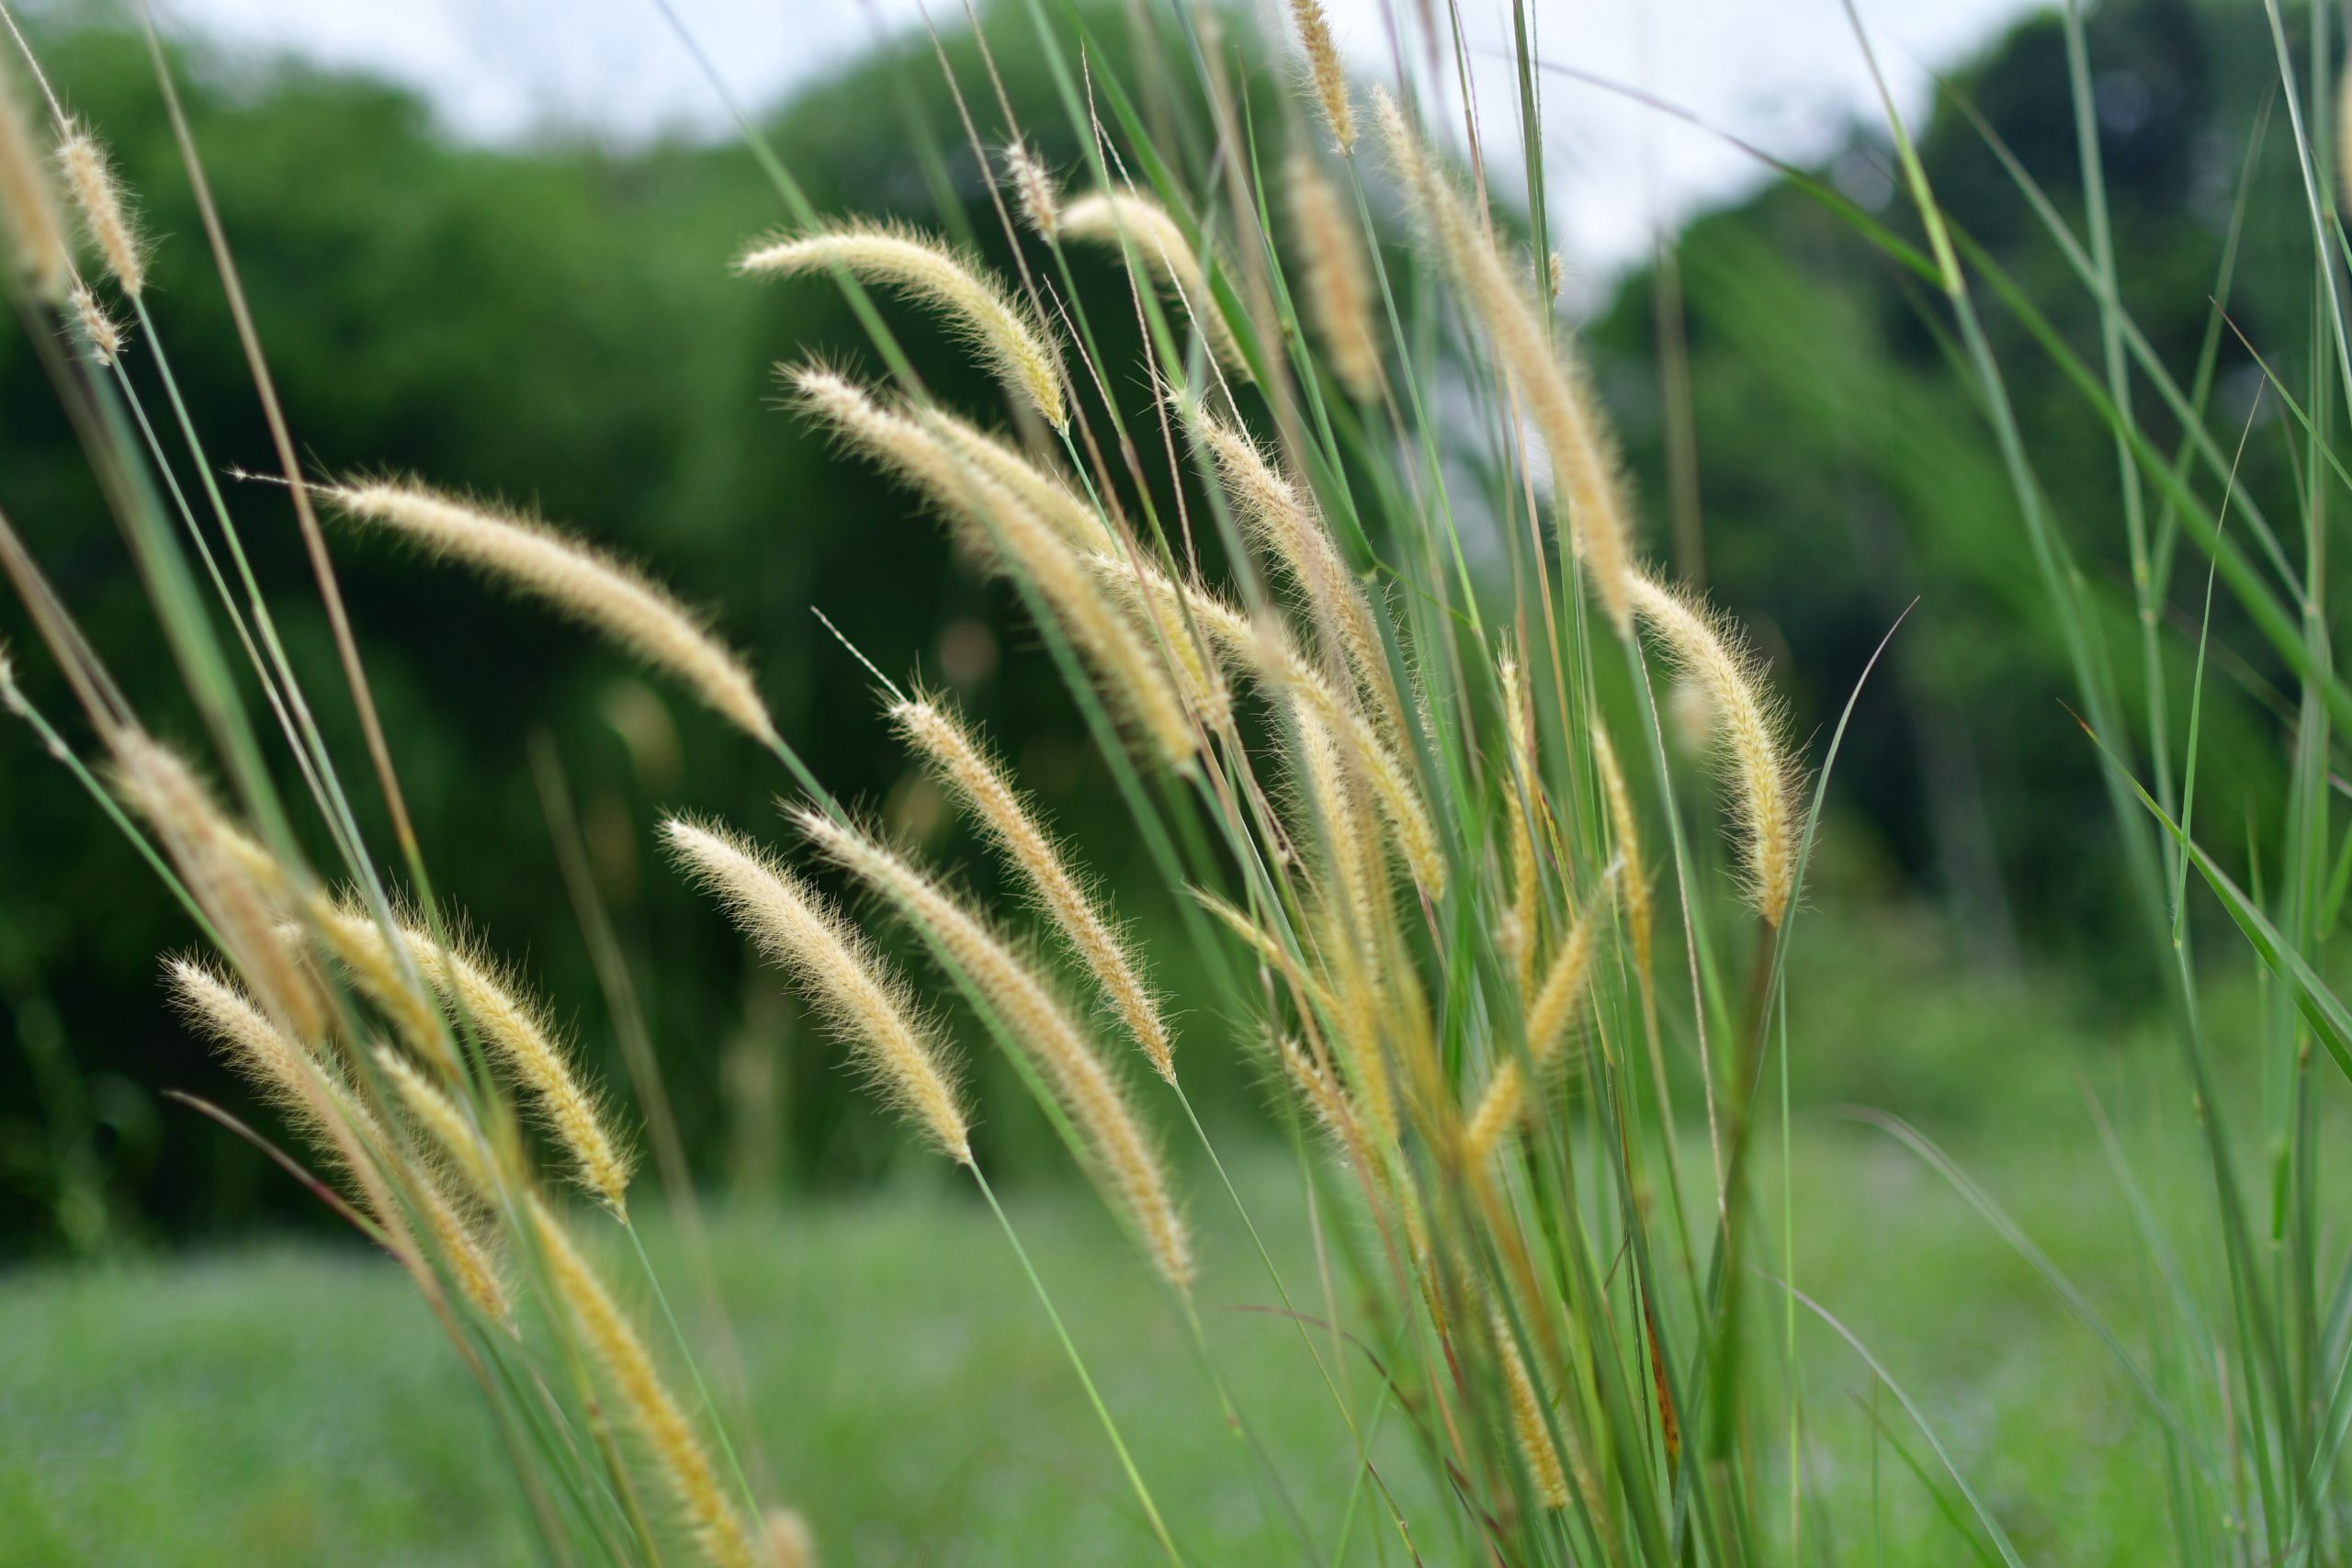 brown wheat grass blowing in the wind with a gorgeous green background.